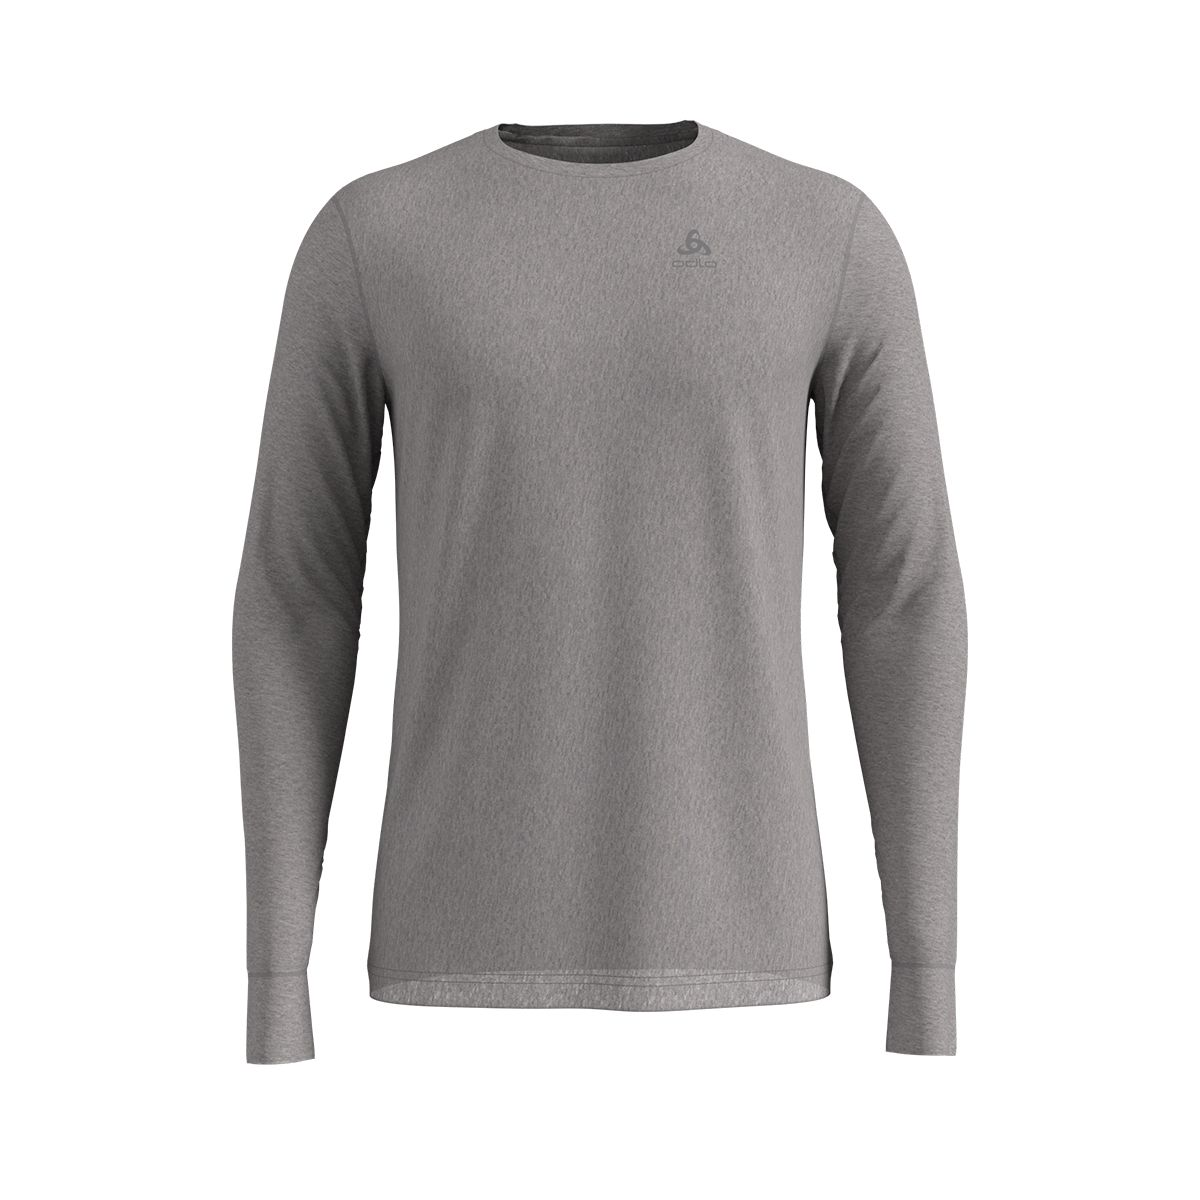 NATURAL MERINO WARM SUW TOP Crew neck l/s Langarm Unterhemd